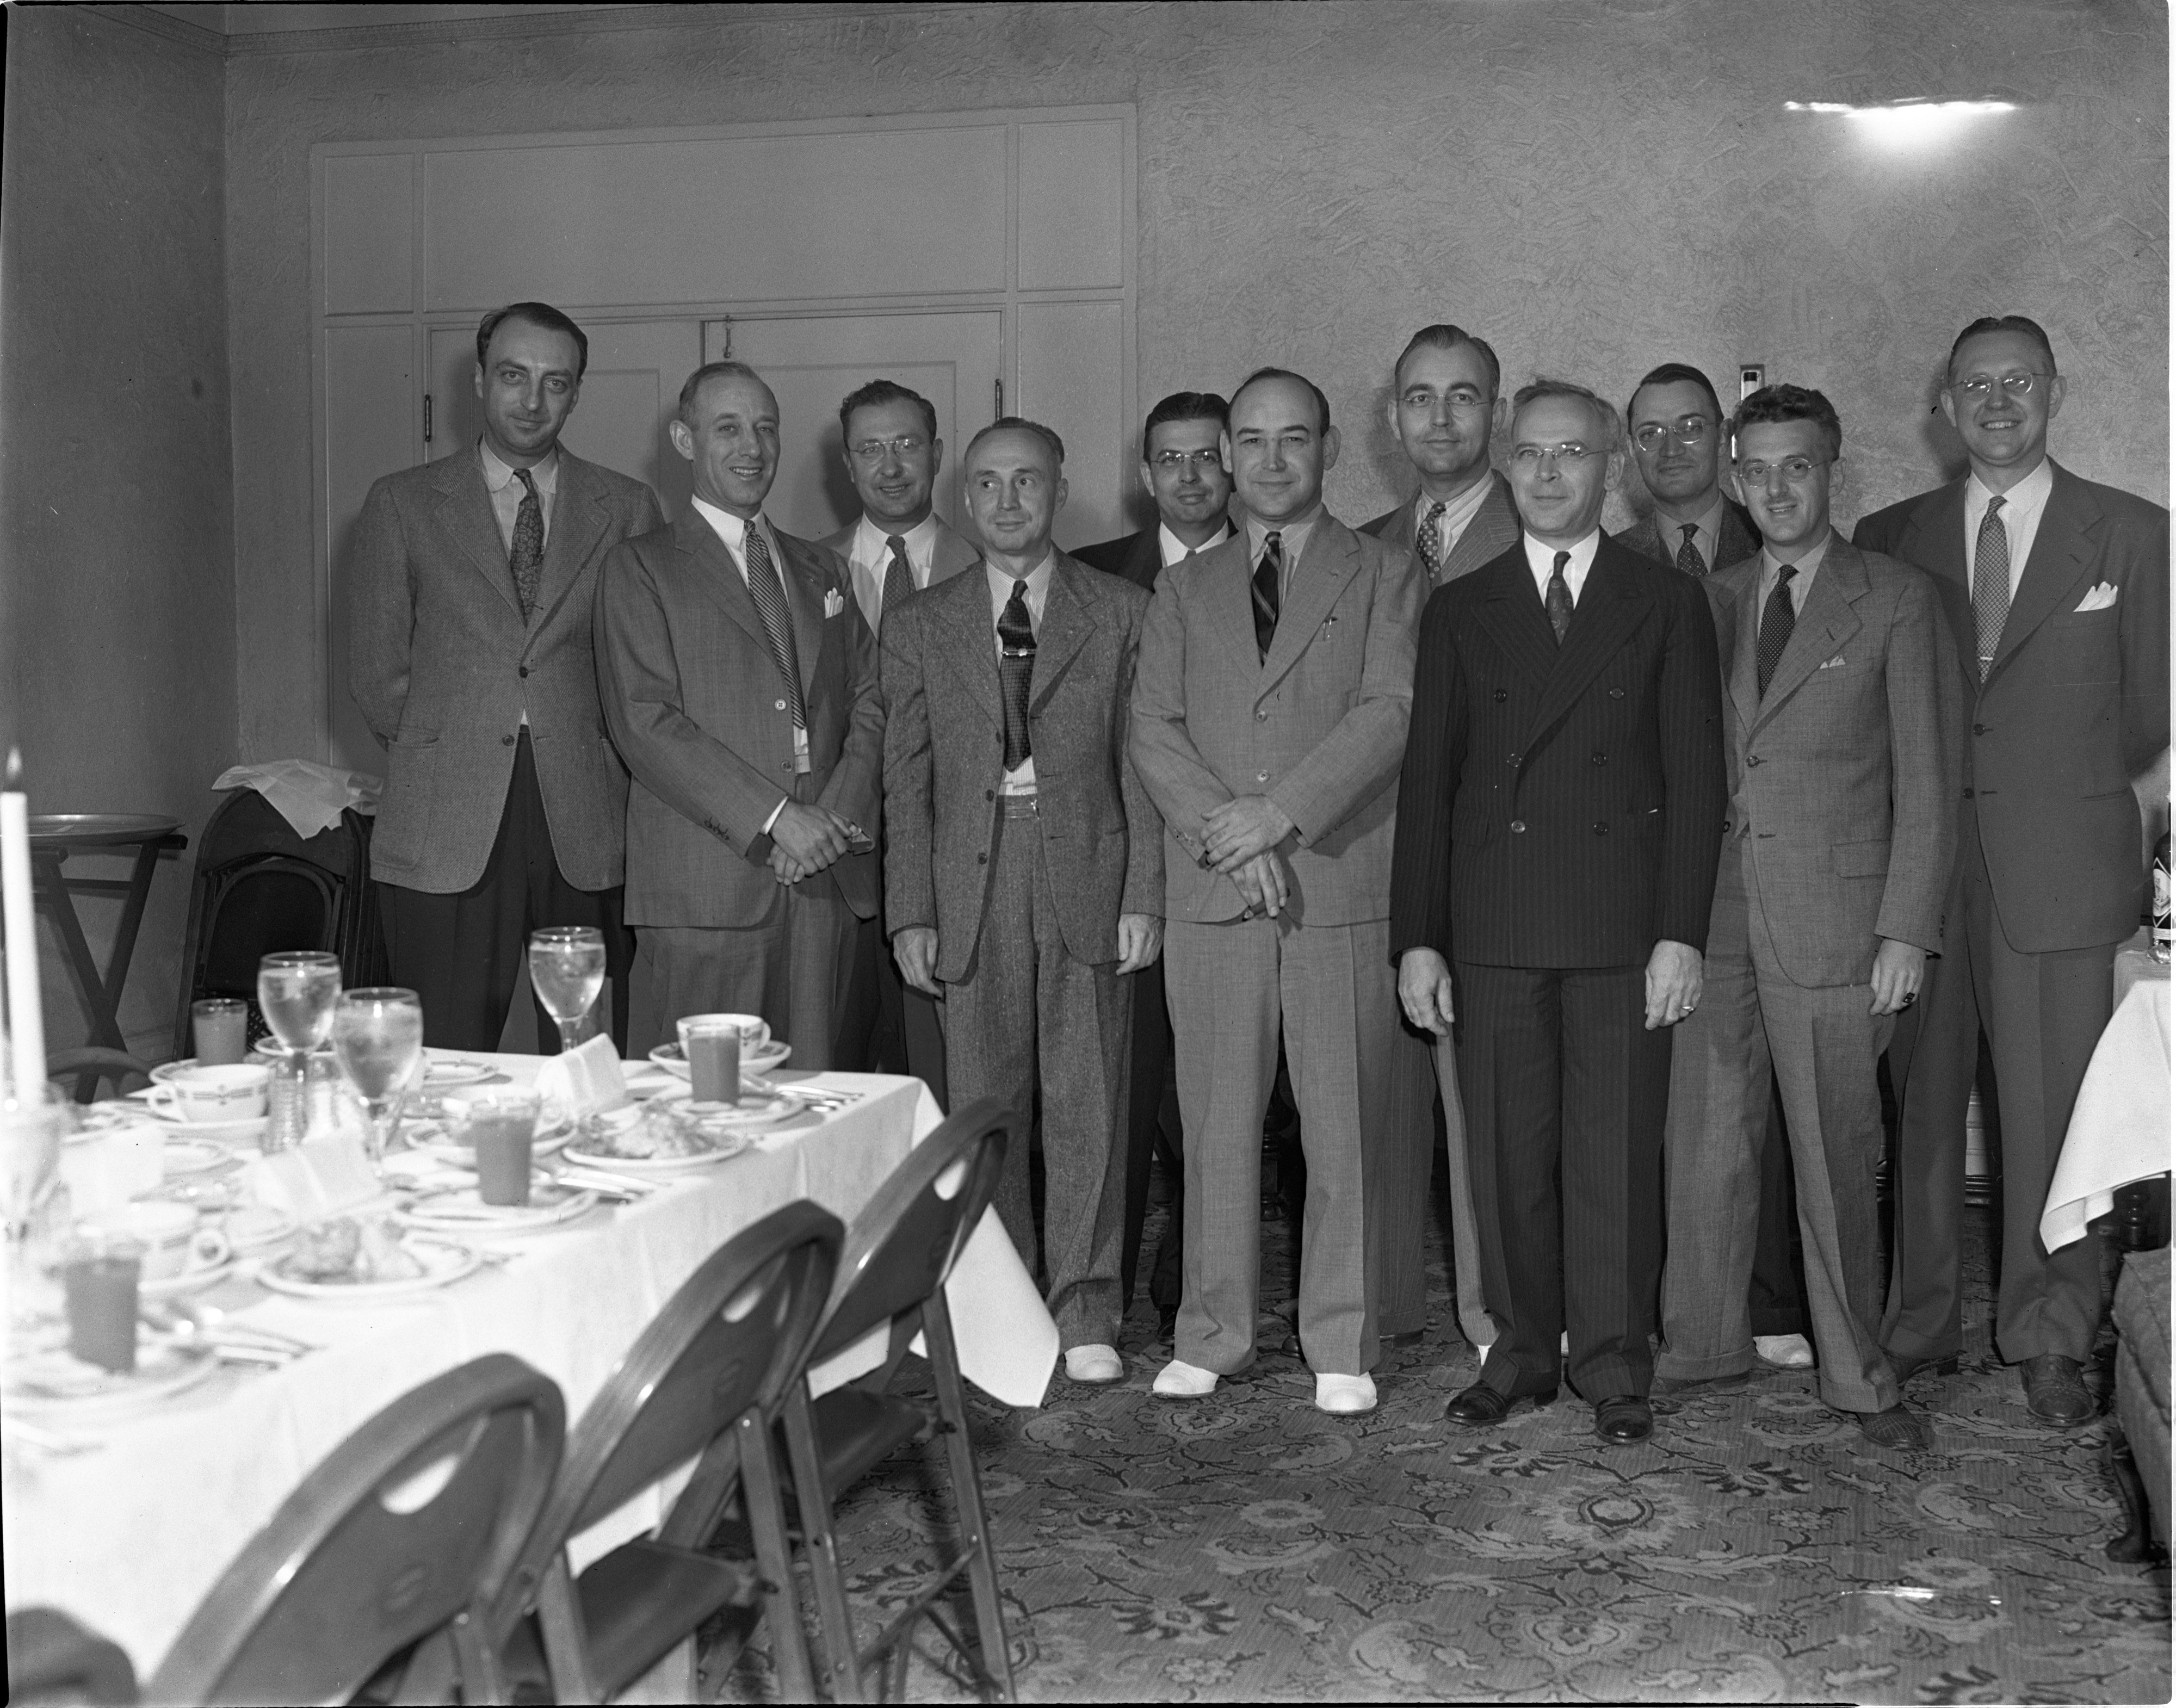 Ann Arbor Lions Club - Past Presidents, Circa 1940 image